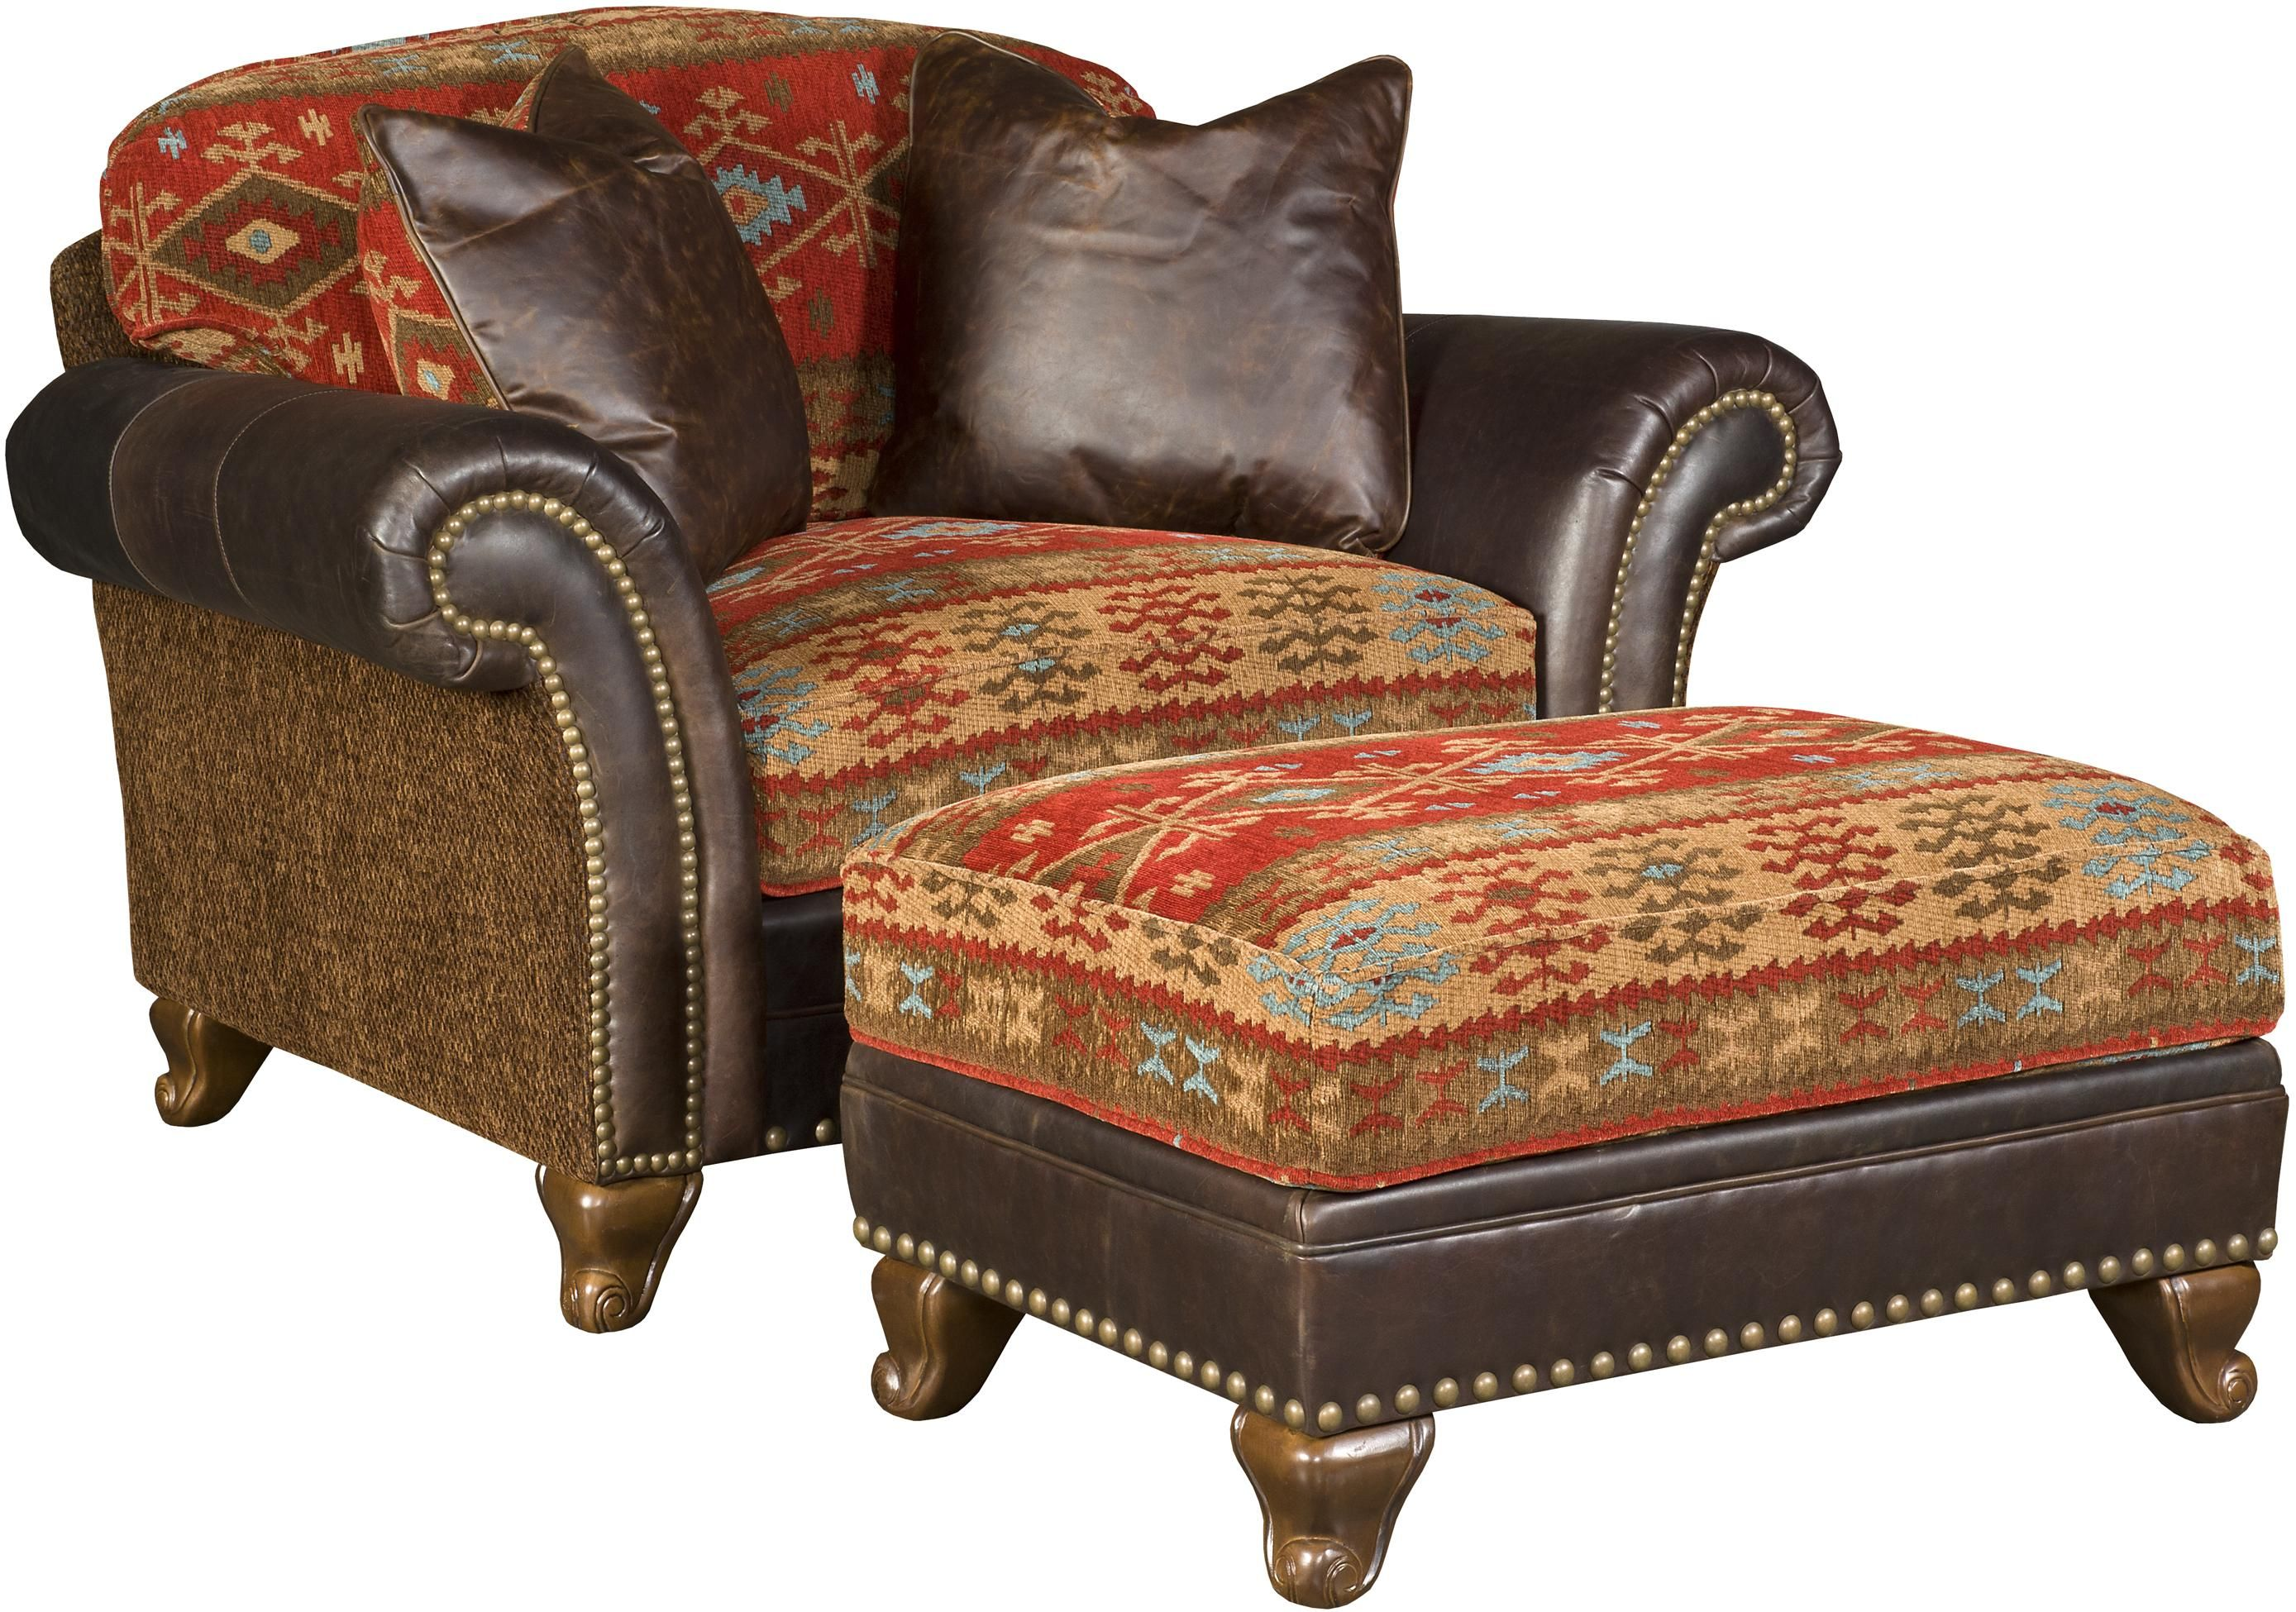 Shop For The King Hickory Katherine Chair And Ottoman At Story U0026 Lee  Furniture   Your Leoma, Lawrenceburg TN And Florence, Athens, Decatur,  Huntsville AL ...